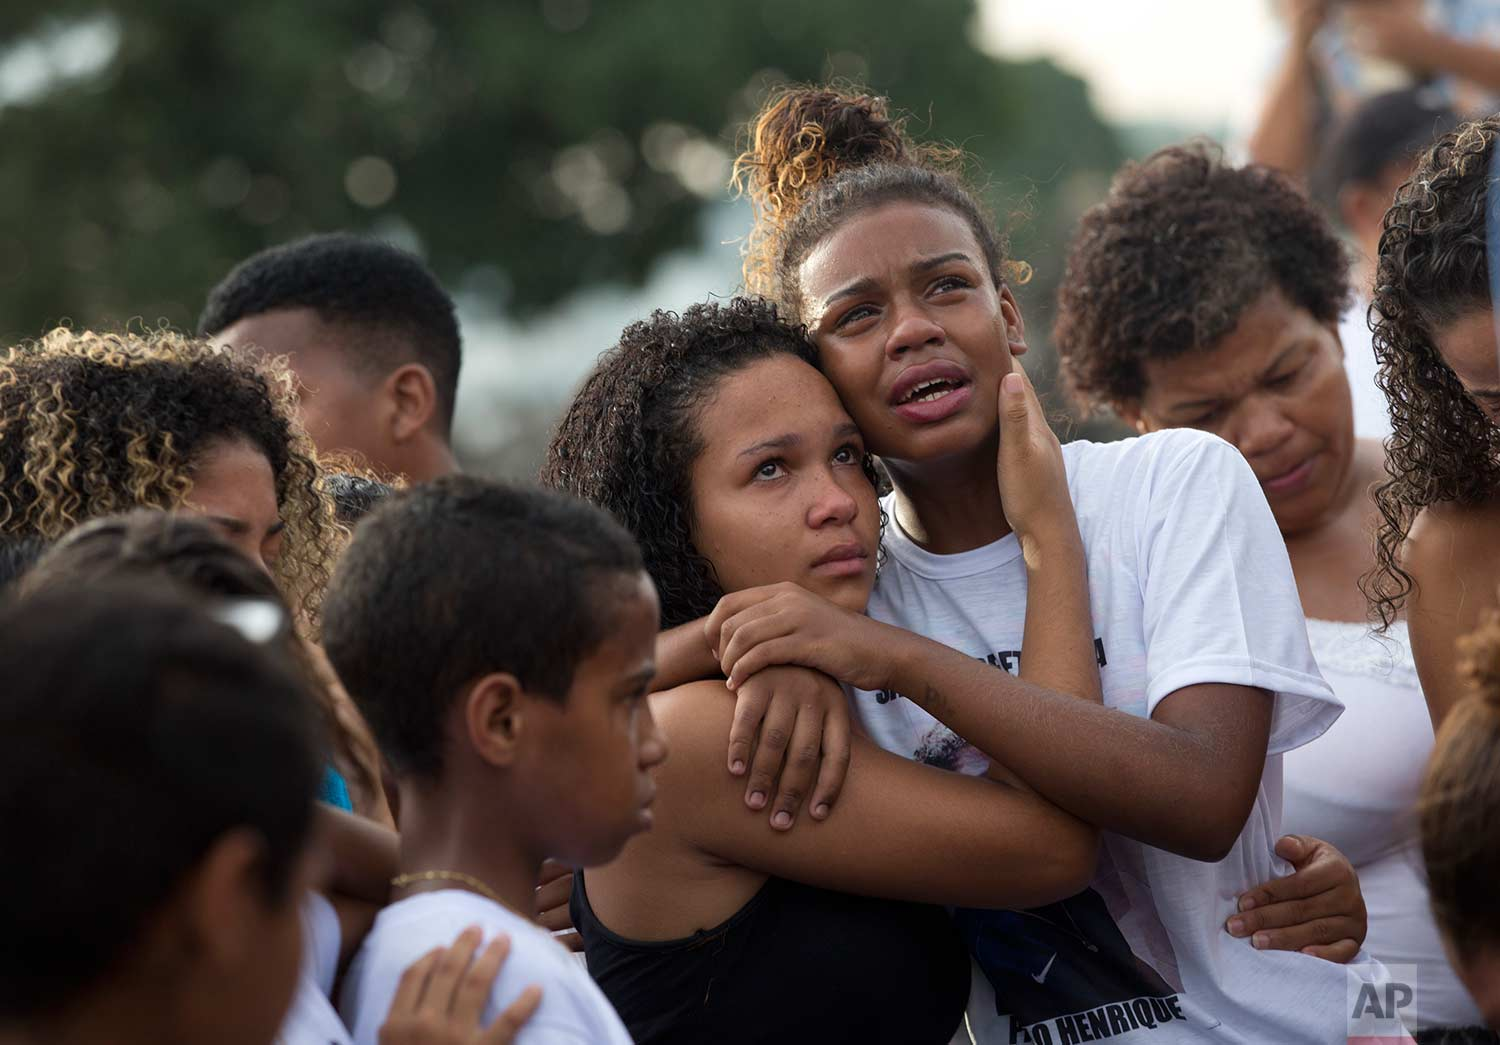 In this April 26, 2017 photo, relatives and friends attend the burial of 13-year-old Paulo Henrique Oliveira, in Rio de Janeiro, Brazil. The boy lived with his family in the Alemao complex of slums and was walking to visit a neighbor when he was mortally wounded by a stray bullet from a shootout between Brazilian police and drug traffickers. (AP Photo/Silvia Izquierdo)